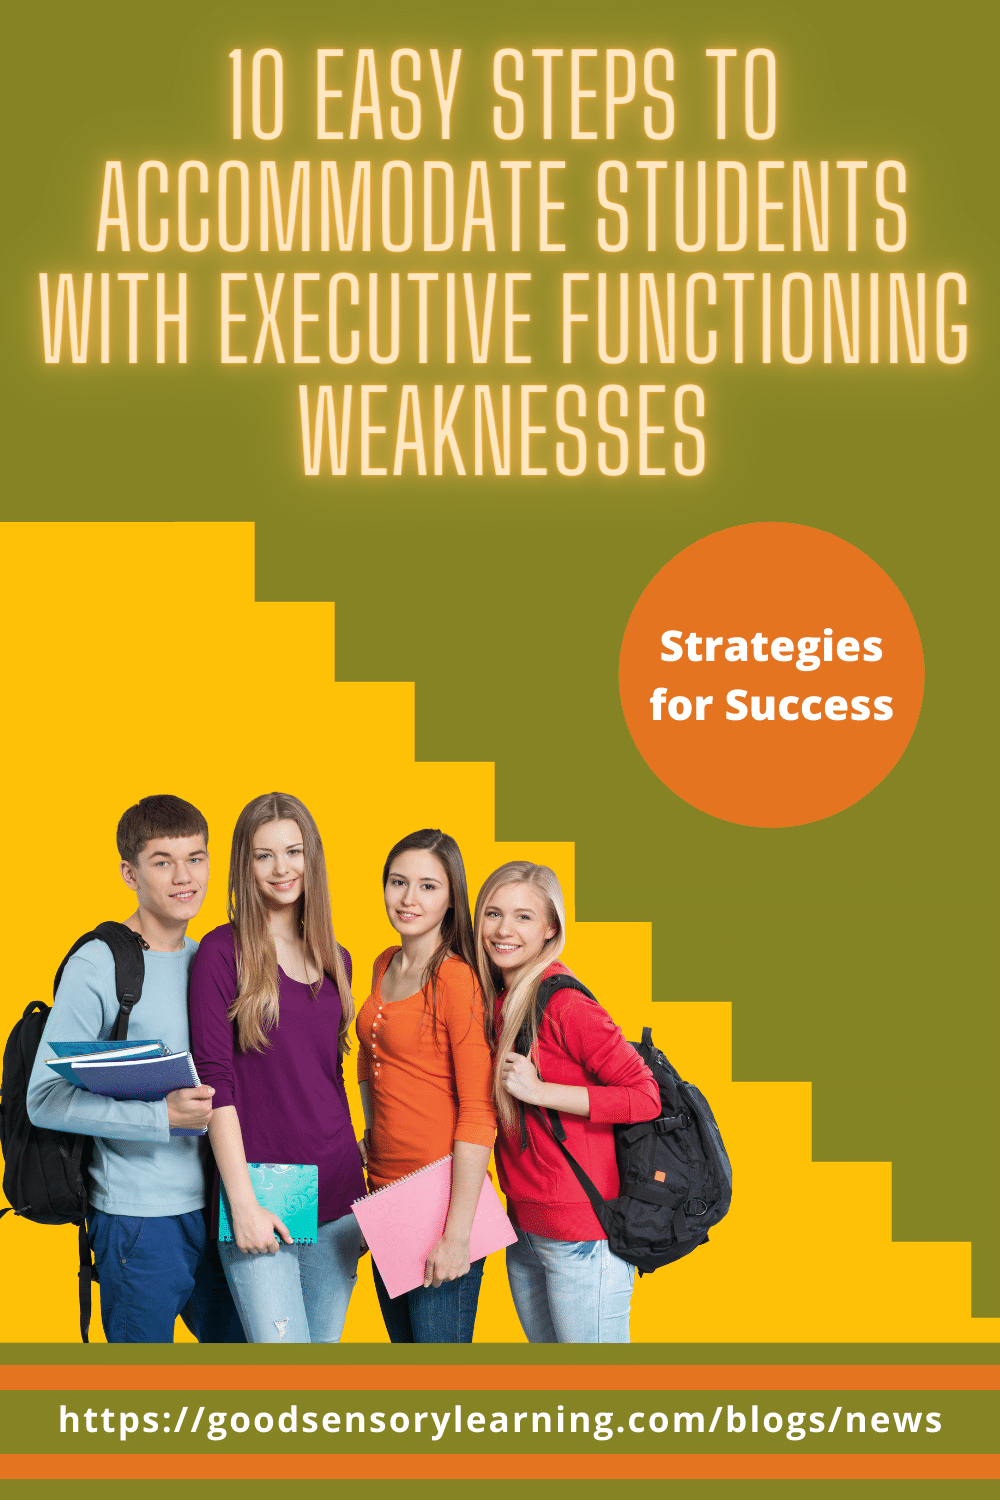 Accommodating Students with Executive Functioning Weaknesses